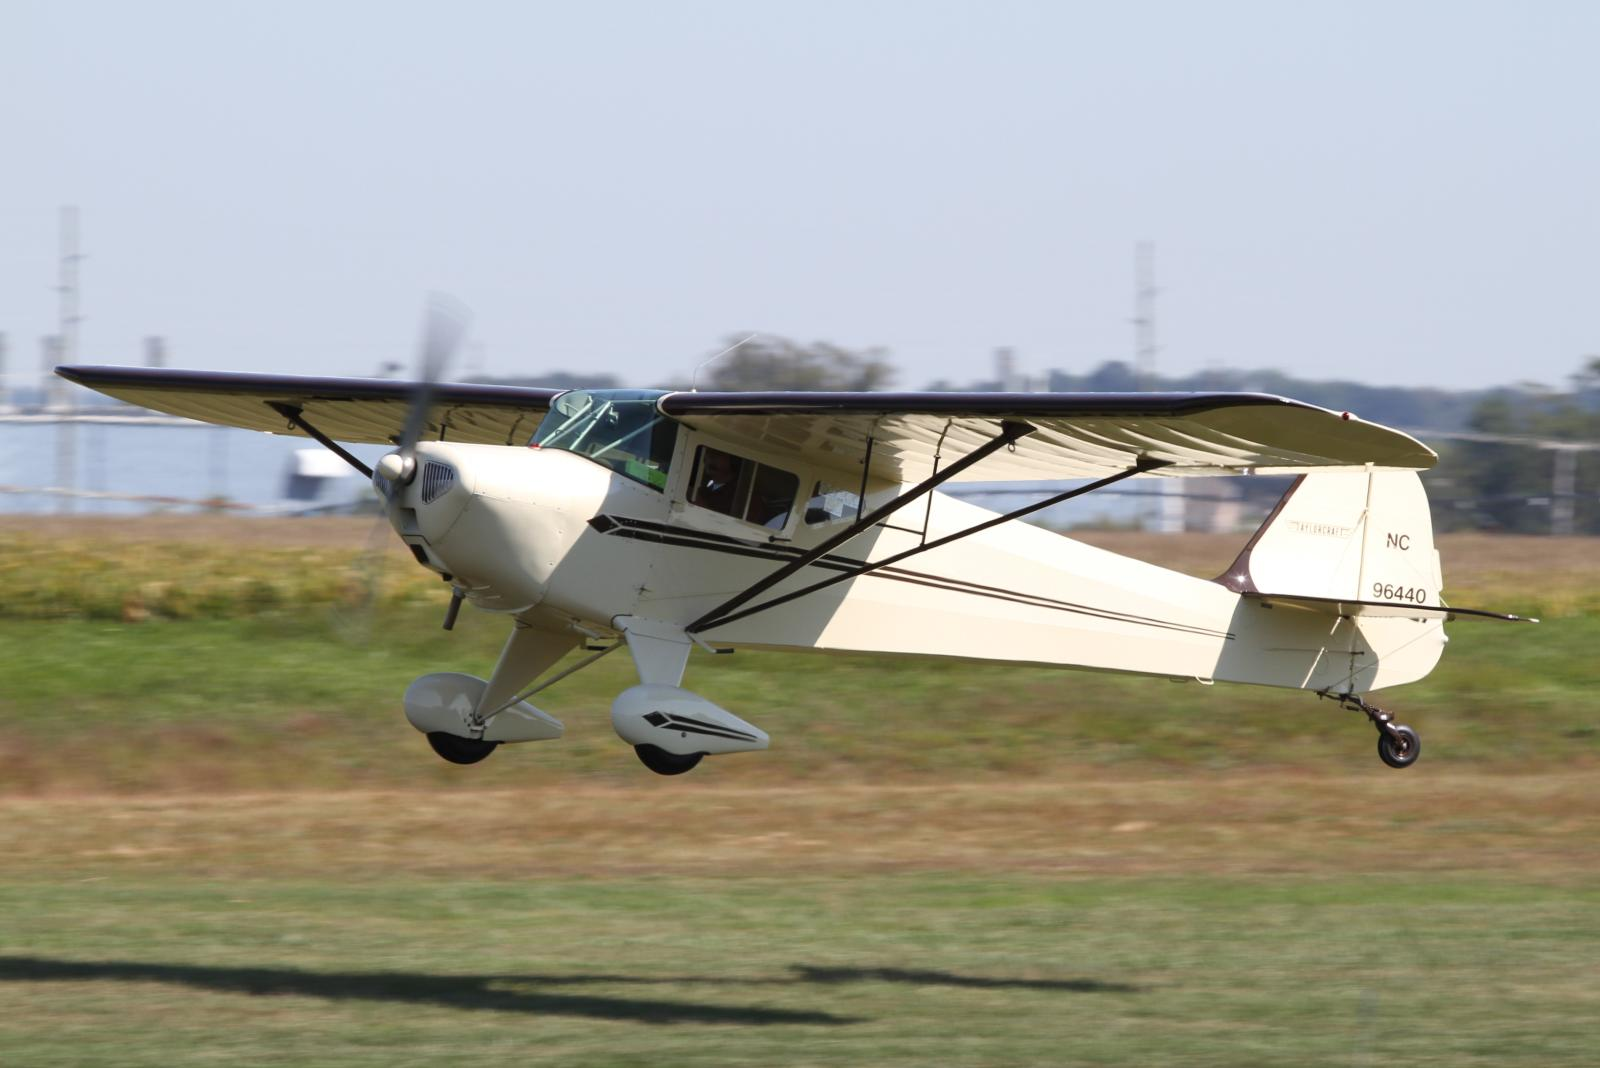 https://upload.wikimedia.org/wikipedia/commons/7/73/Taylorcraft_BC12-D_%28N96440%29.jpg